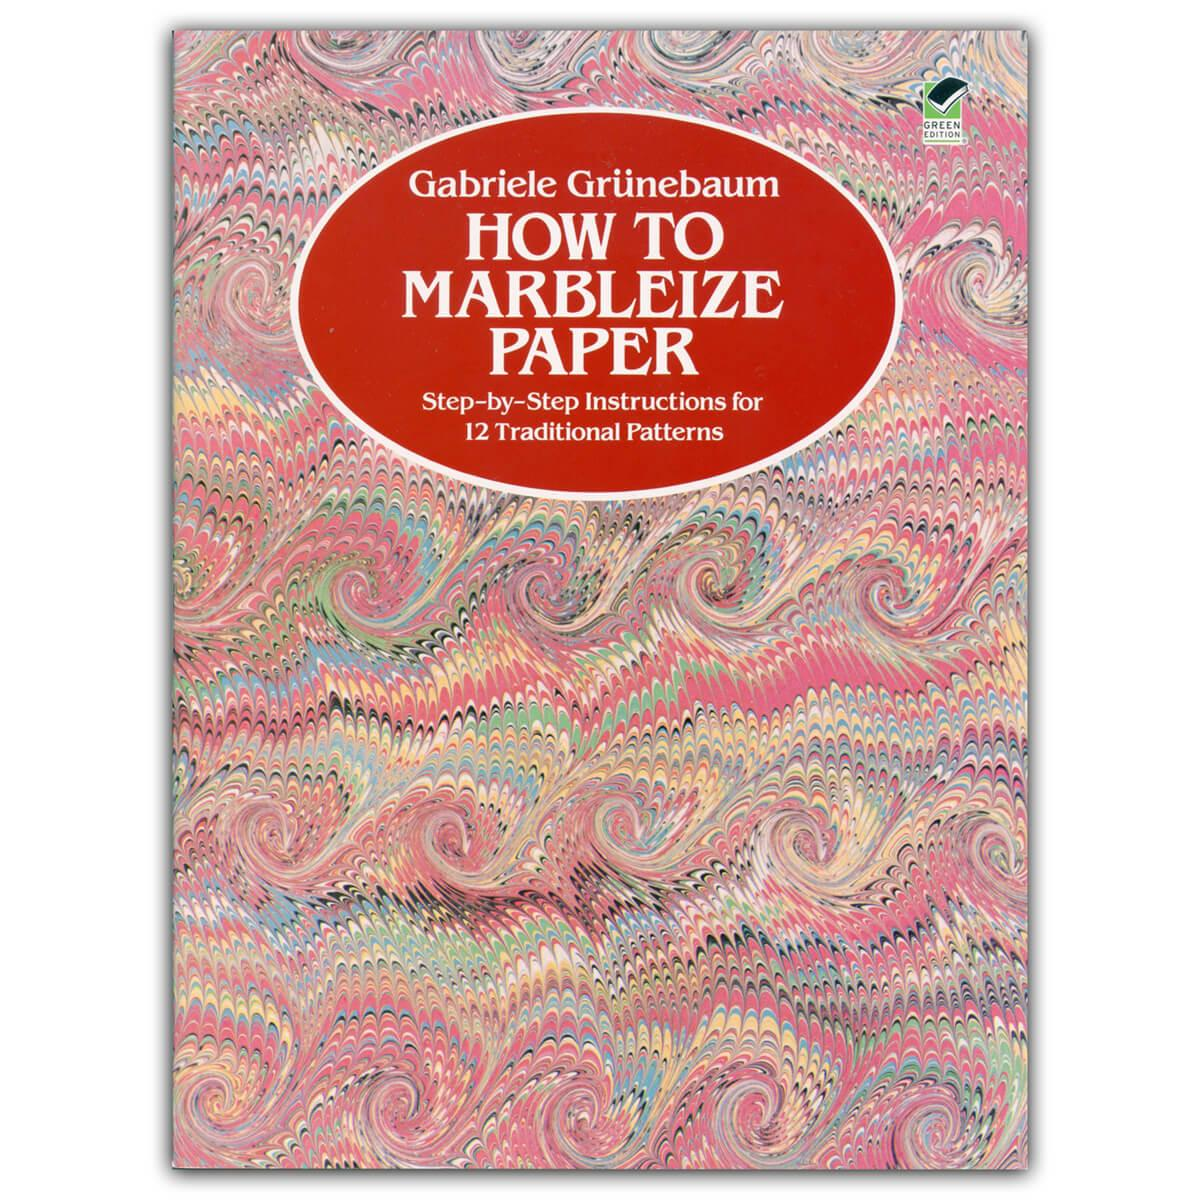 Books on Marbling